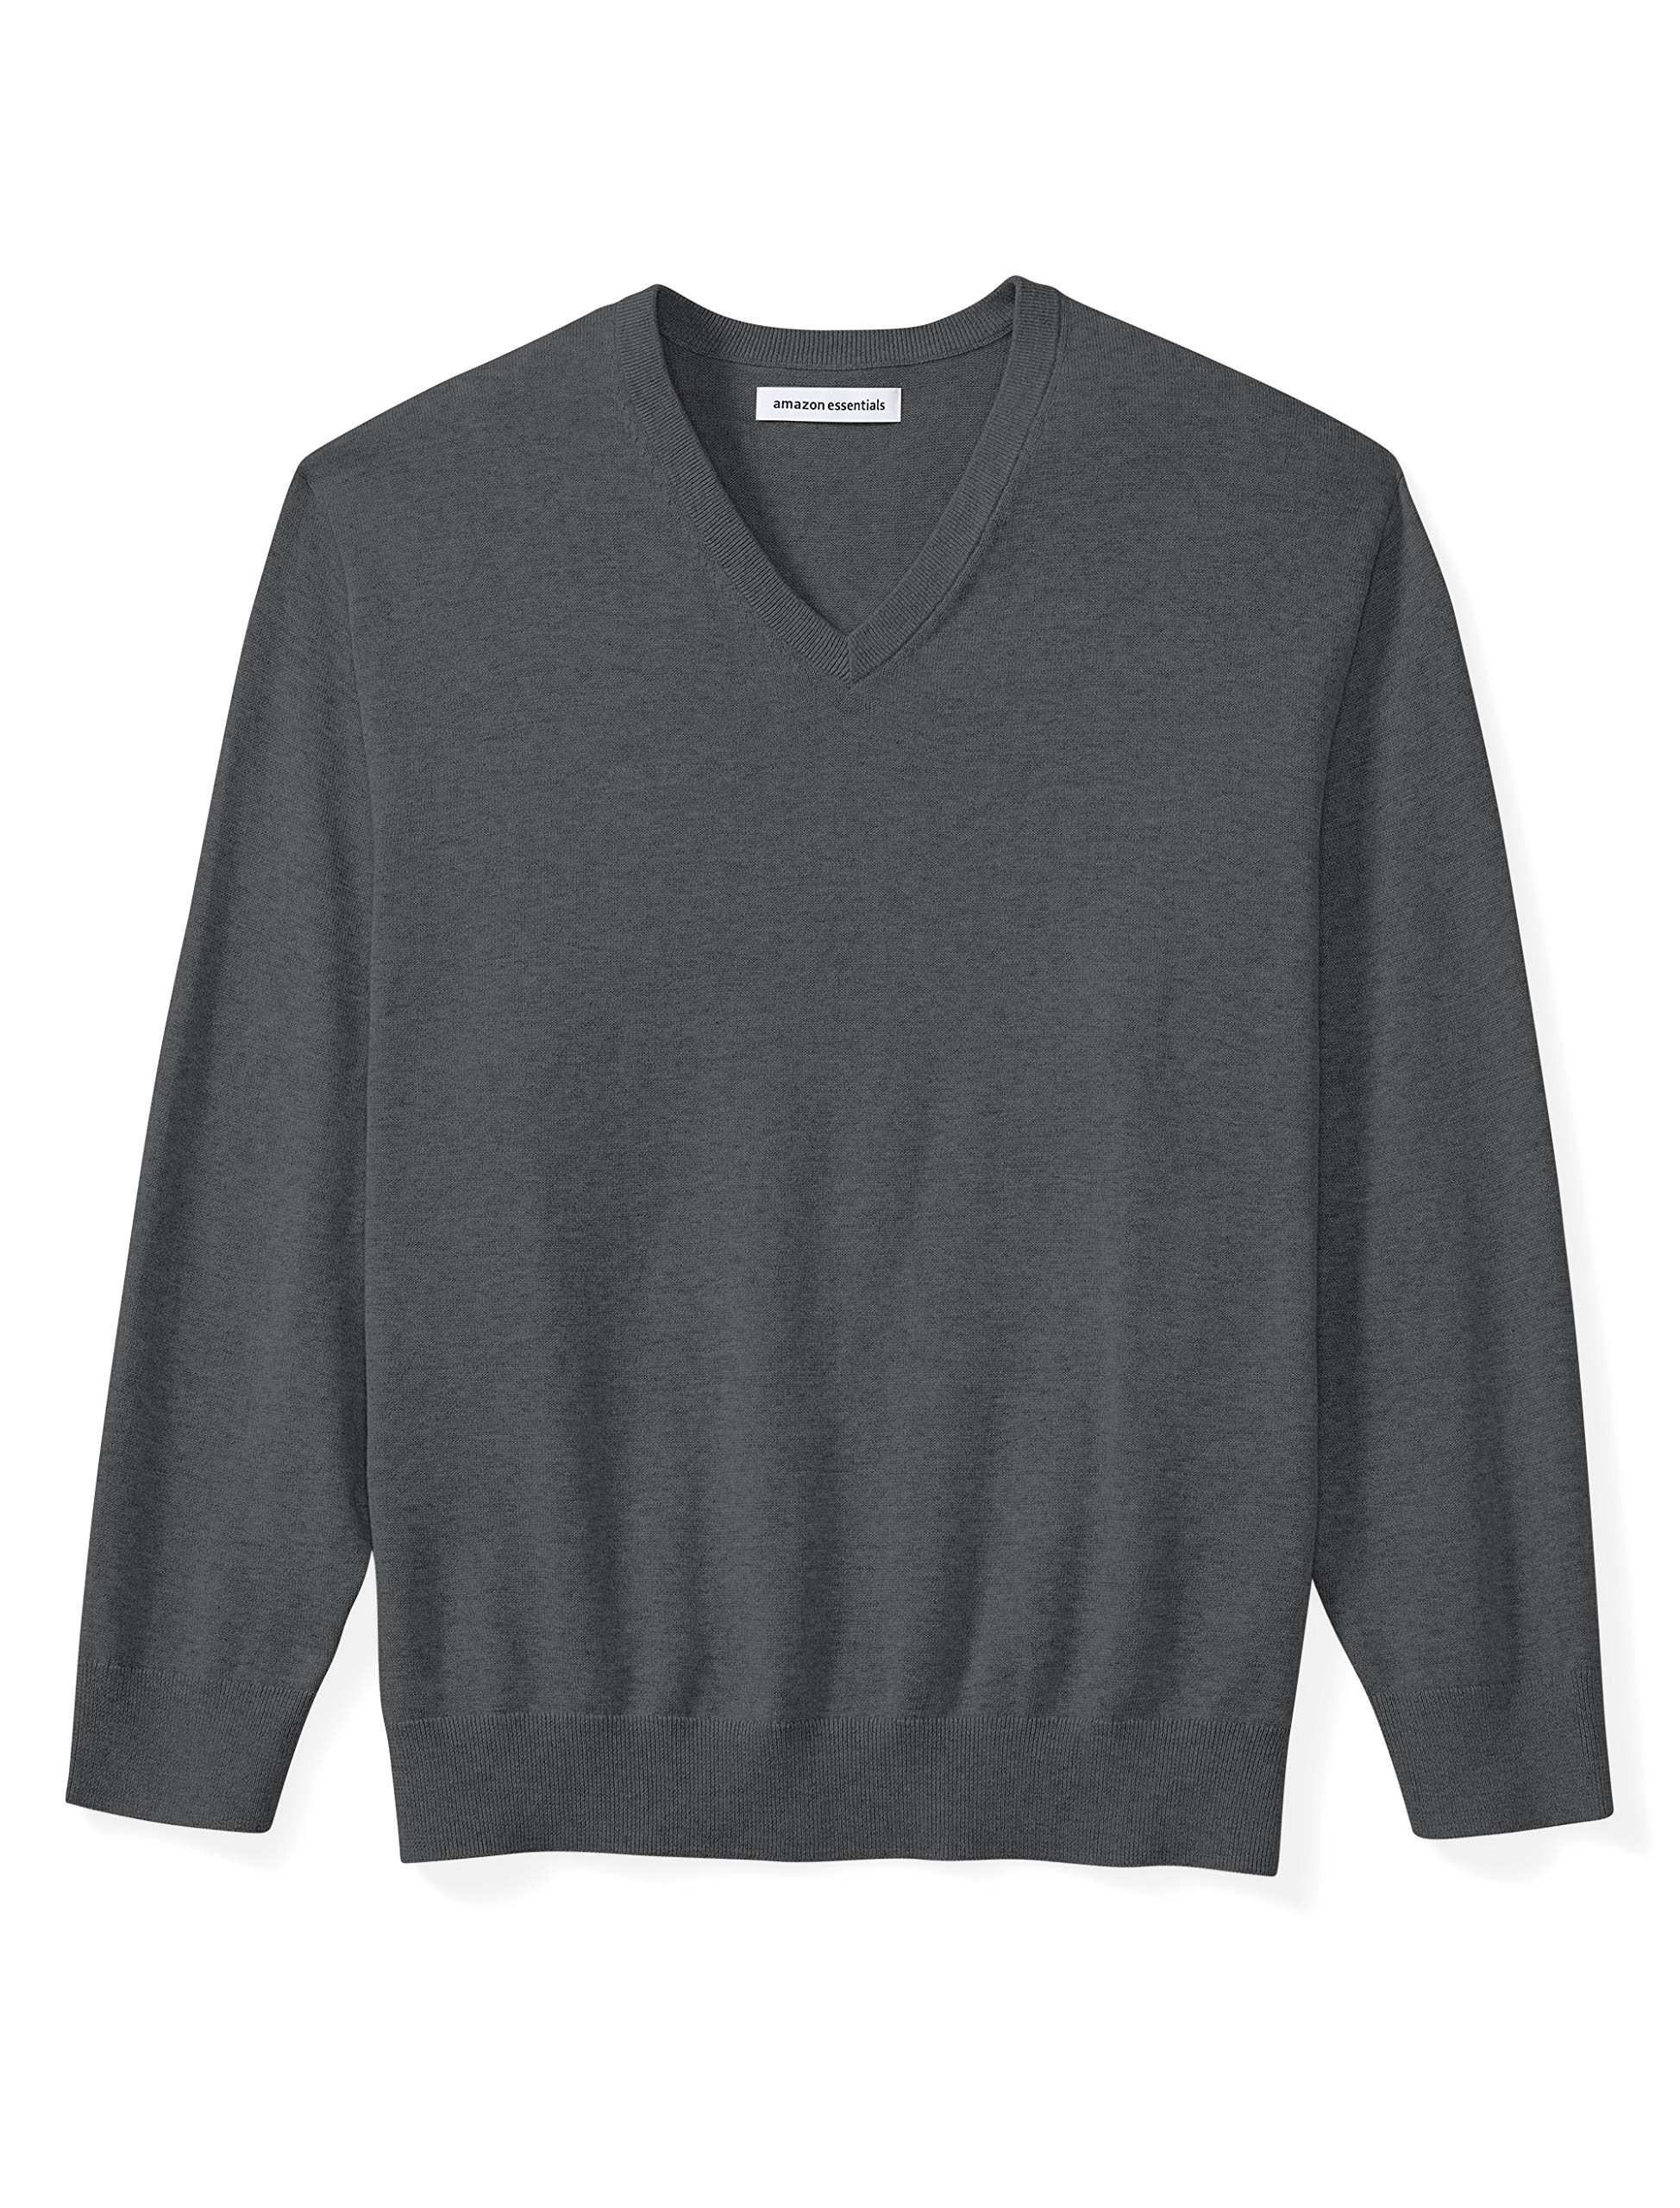 Amazon Essentials Men's Big & Tall V-Neck Sweater fit by DXL, Charcoal Heather, 4X Tall by Amazon Essentials